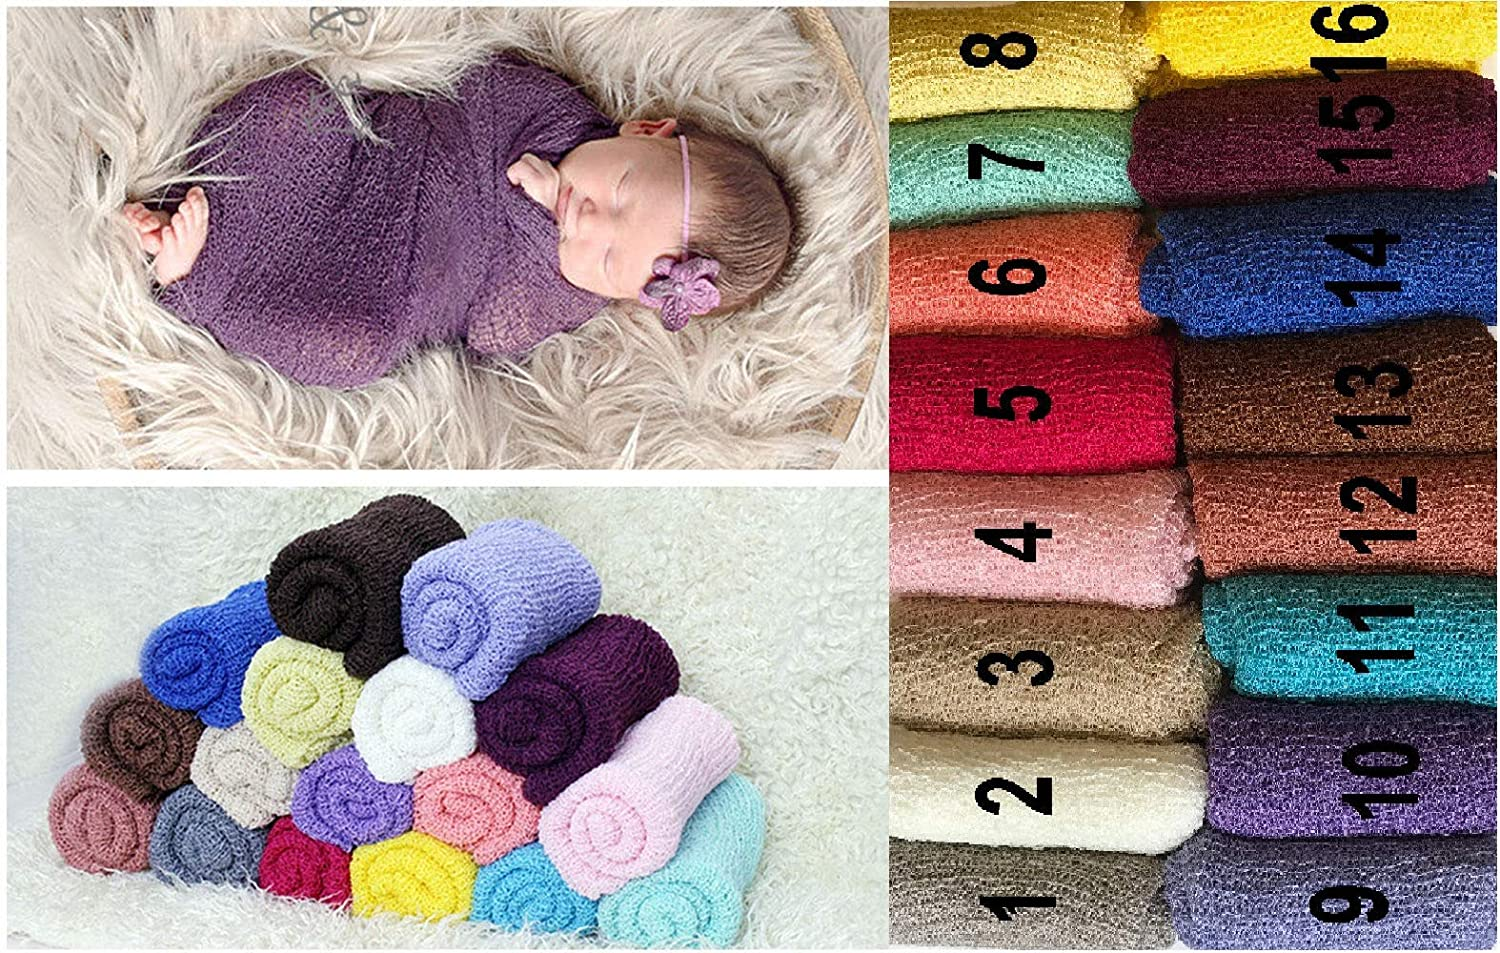 Newborn Baby Cheesecloth Swaddle Cocoon Blanket Knit Crochet Wrap Photo Photography Prop (6) Matissa ltd